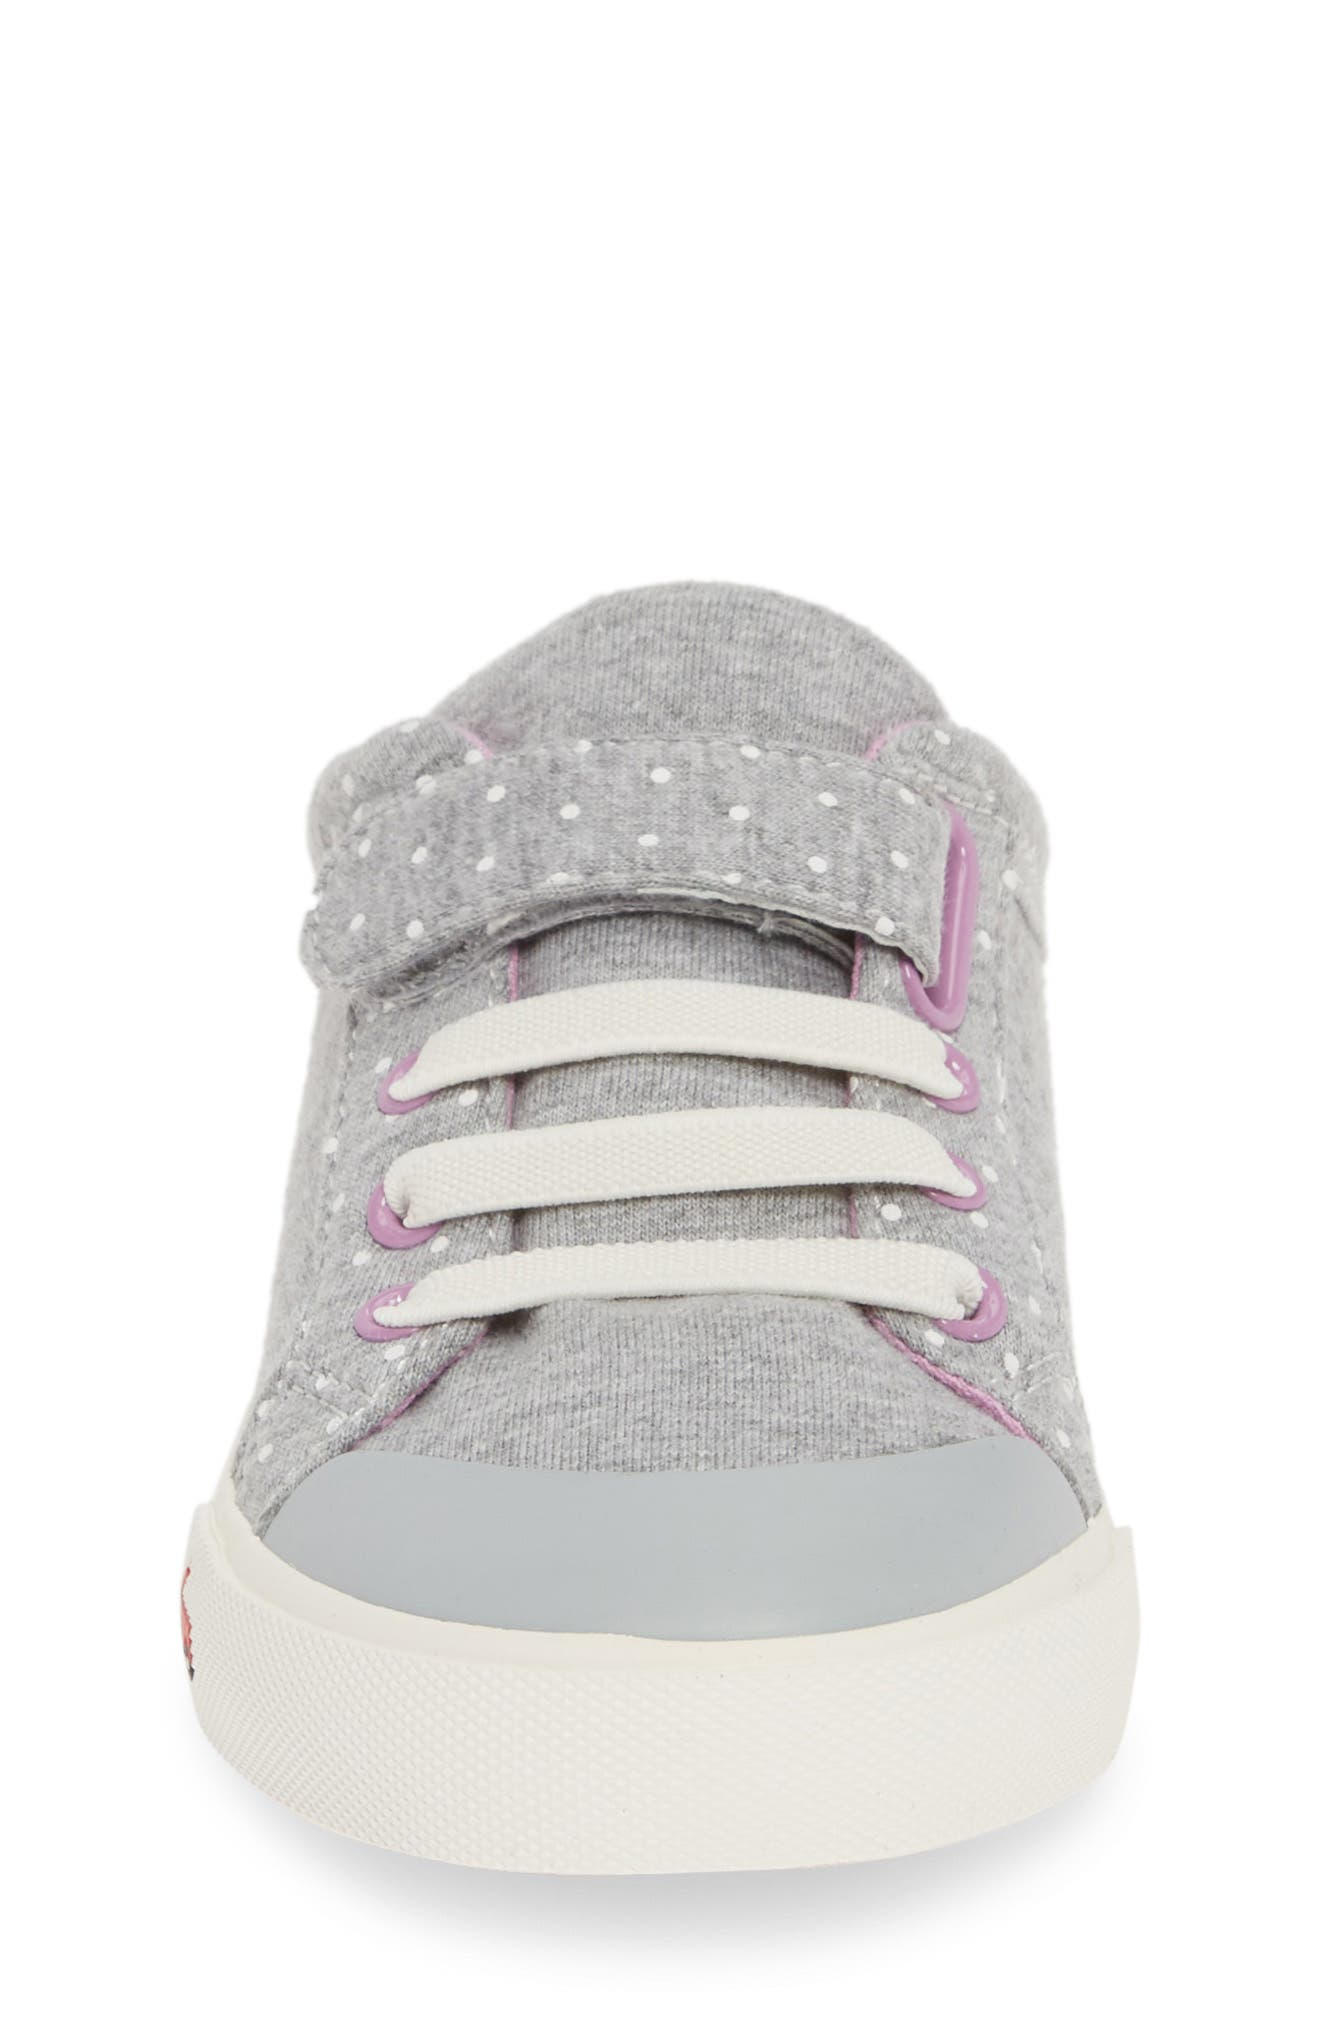 SEE KAI RUN, Kristin Sneaker, Alternate thumbnail 4, color, GRAY/ PURPLE JERSEY